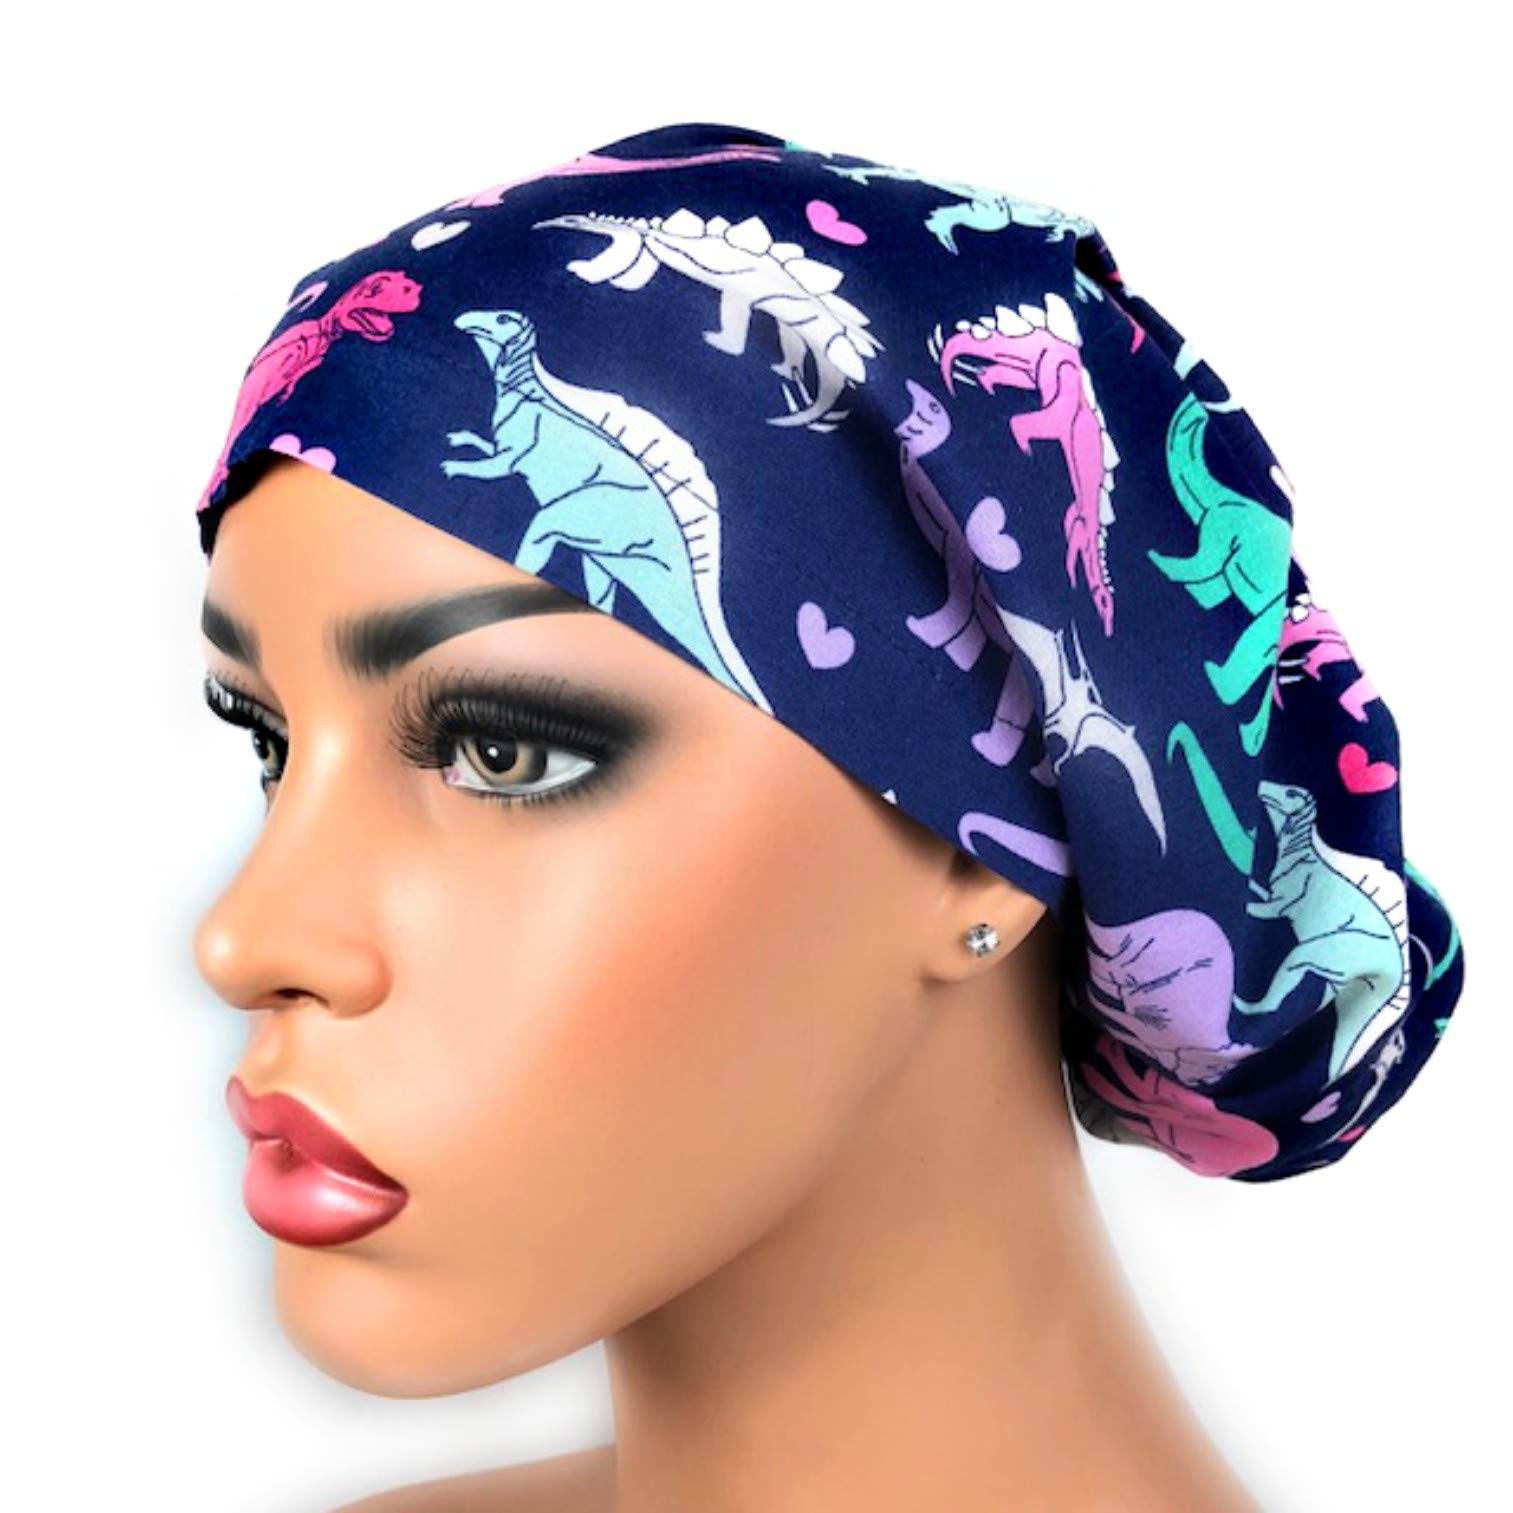 Womens Surgical Scrub Hat OR Nurse Cap Euro Style Girl Dinosaurs and Hearts Bouffant Cap by DK Scrub Hats